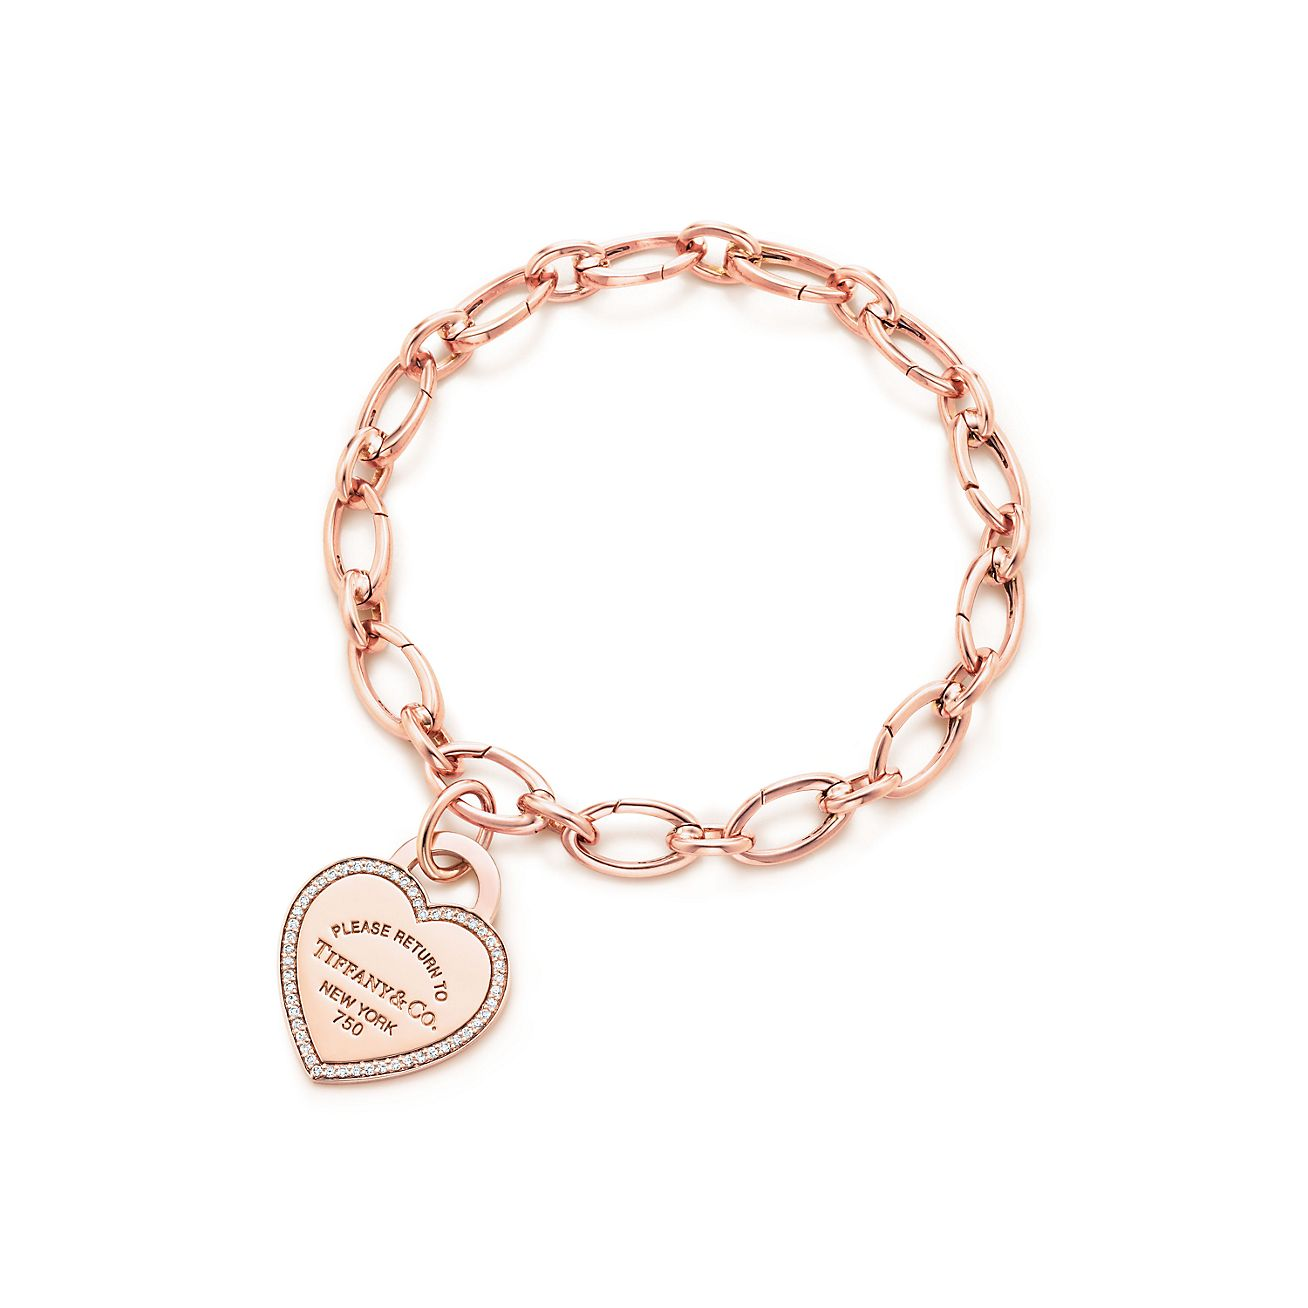 Tiffany Heart Bracelet >> Return To Tiffany Heart Tag Charm In 18k Rose Gold And Diamonds On